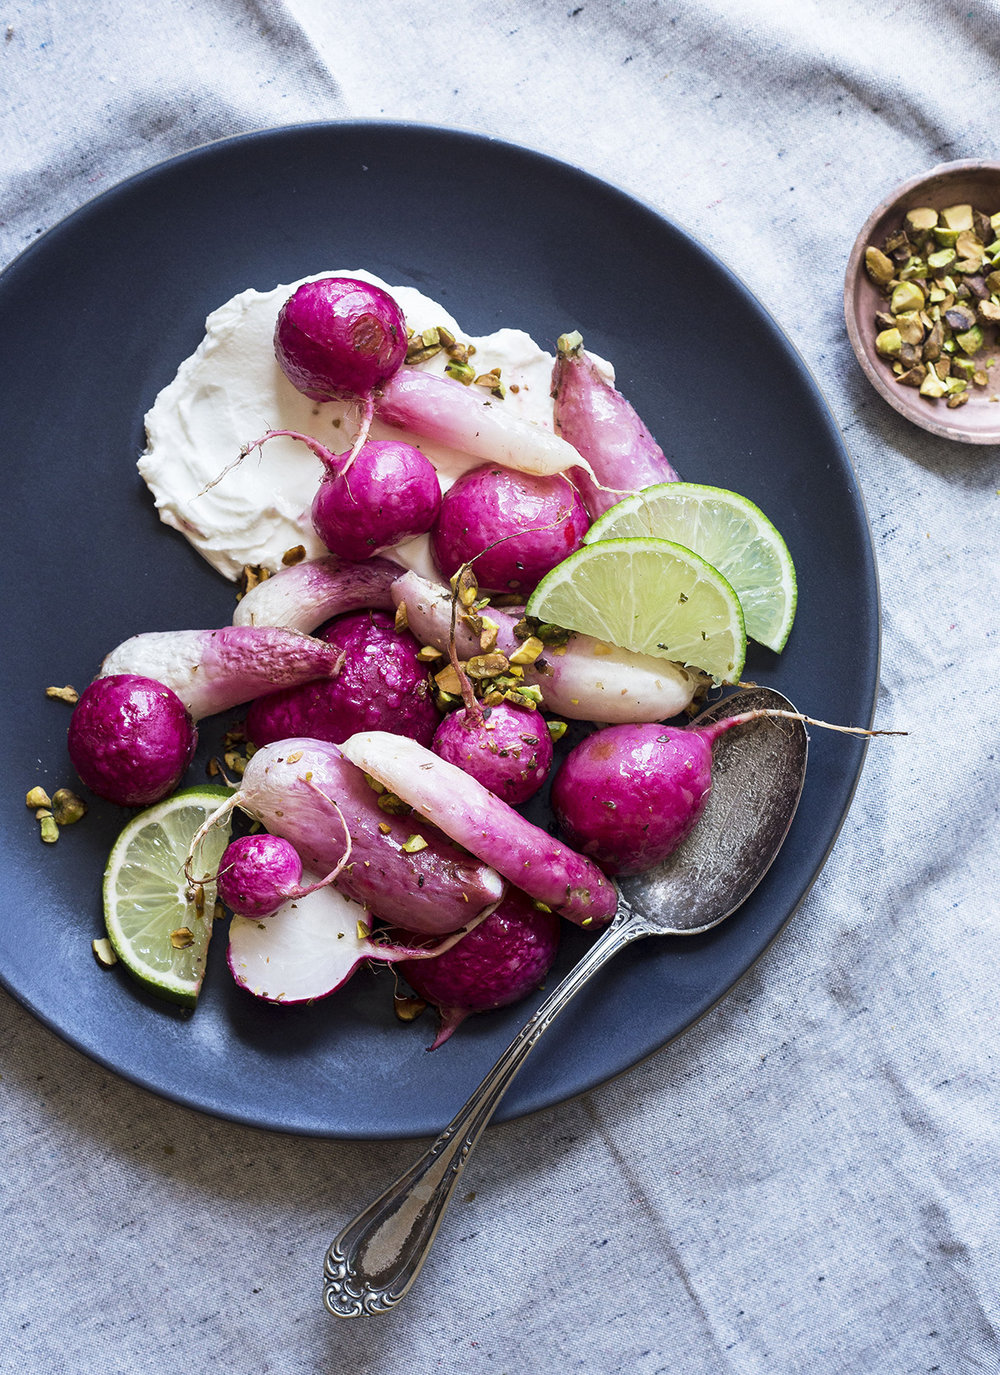 Chewandtaste_Roasted_Radishes5.jpg